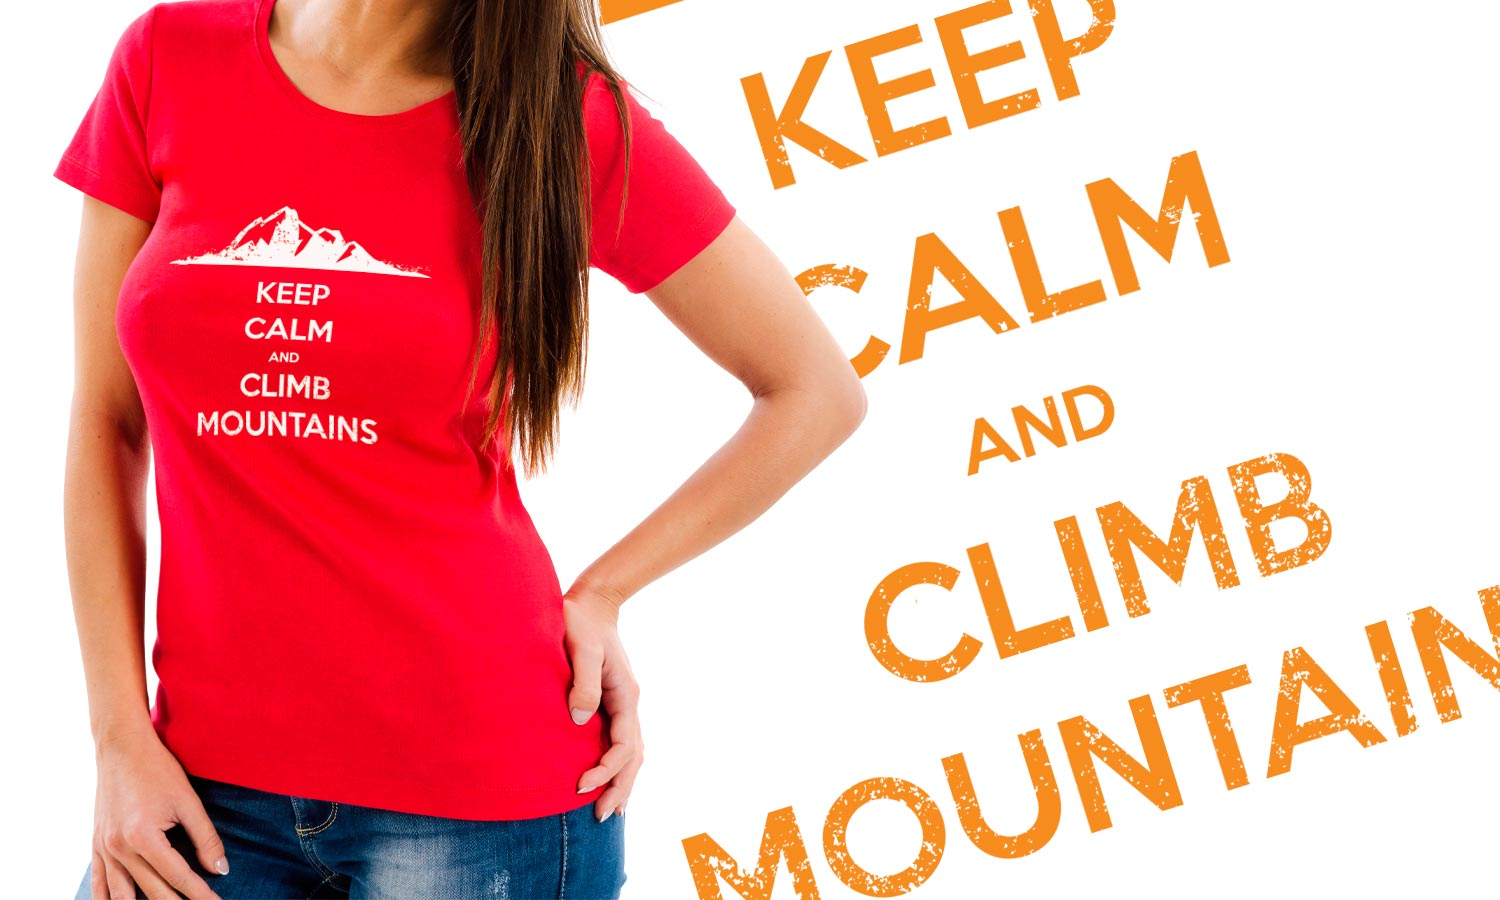 Majica Keep Calm and Climb Mountains , T-Shirt Muška, Ženska i Dječji model 150g.  TS021